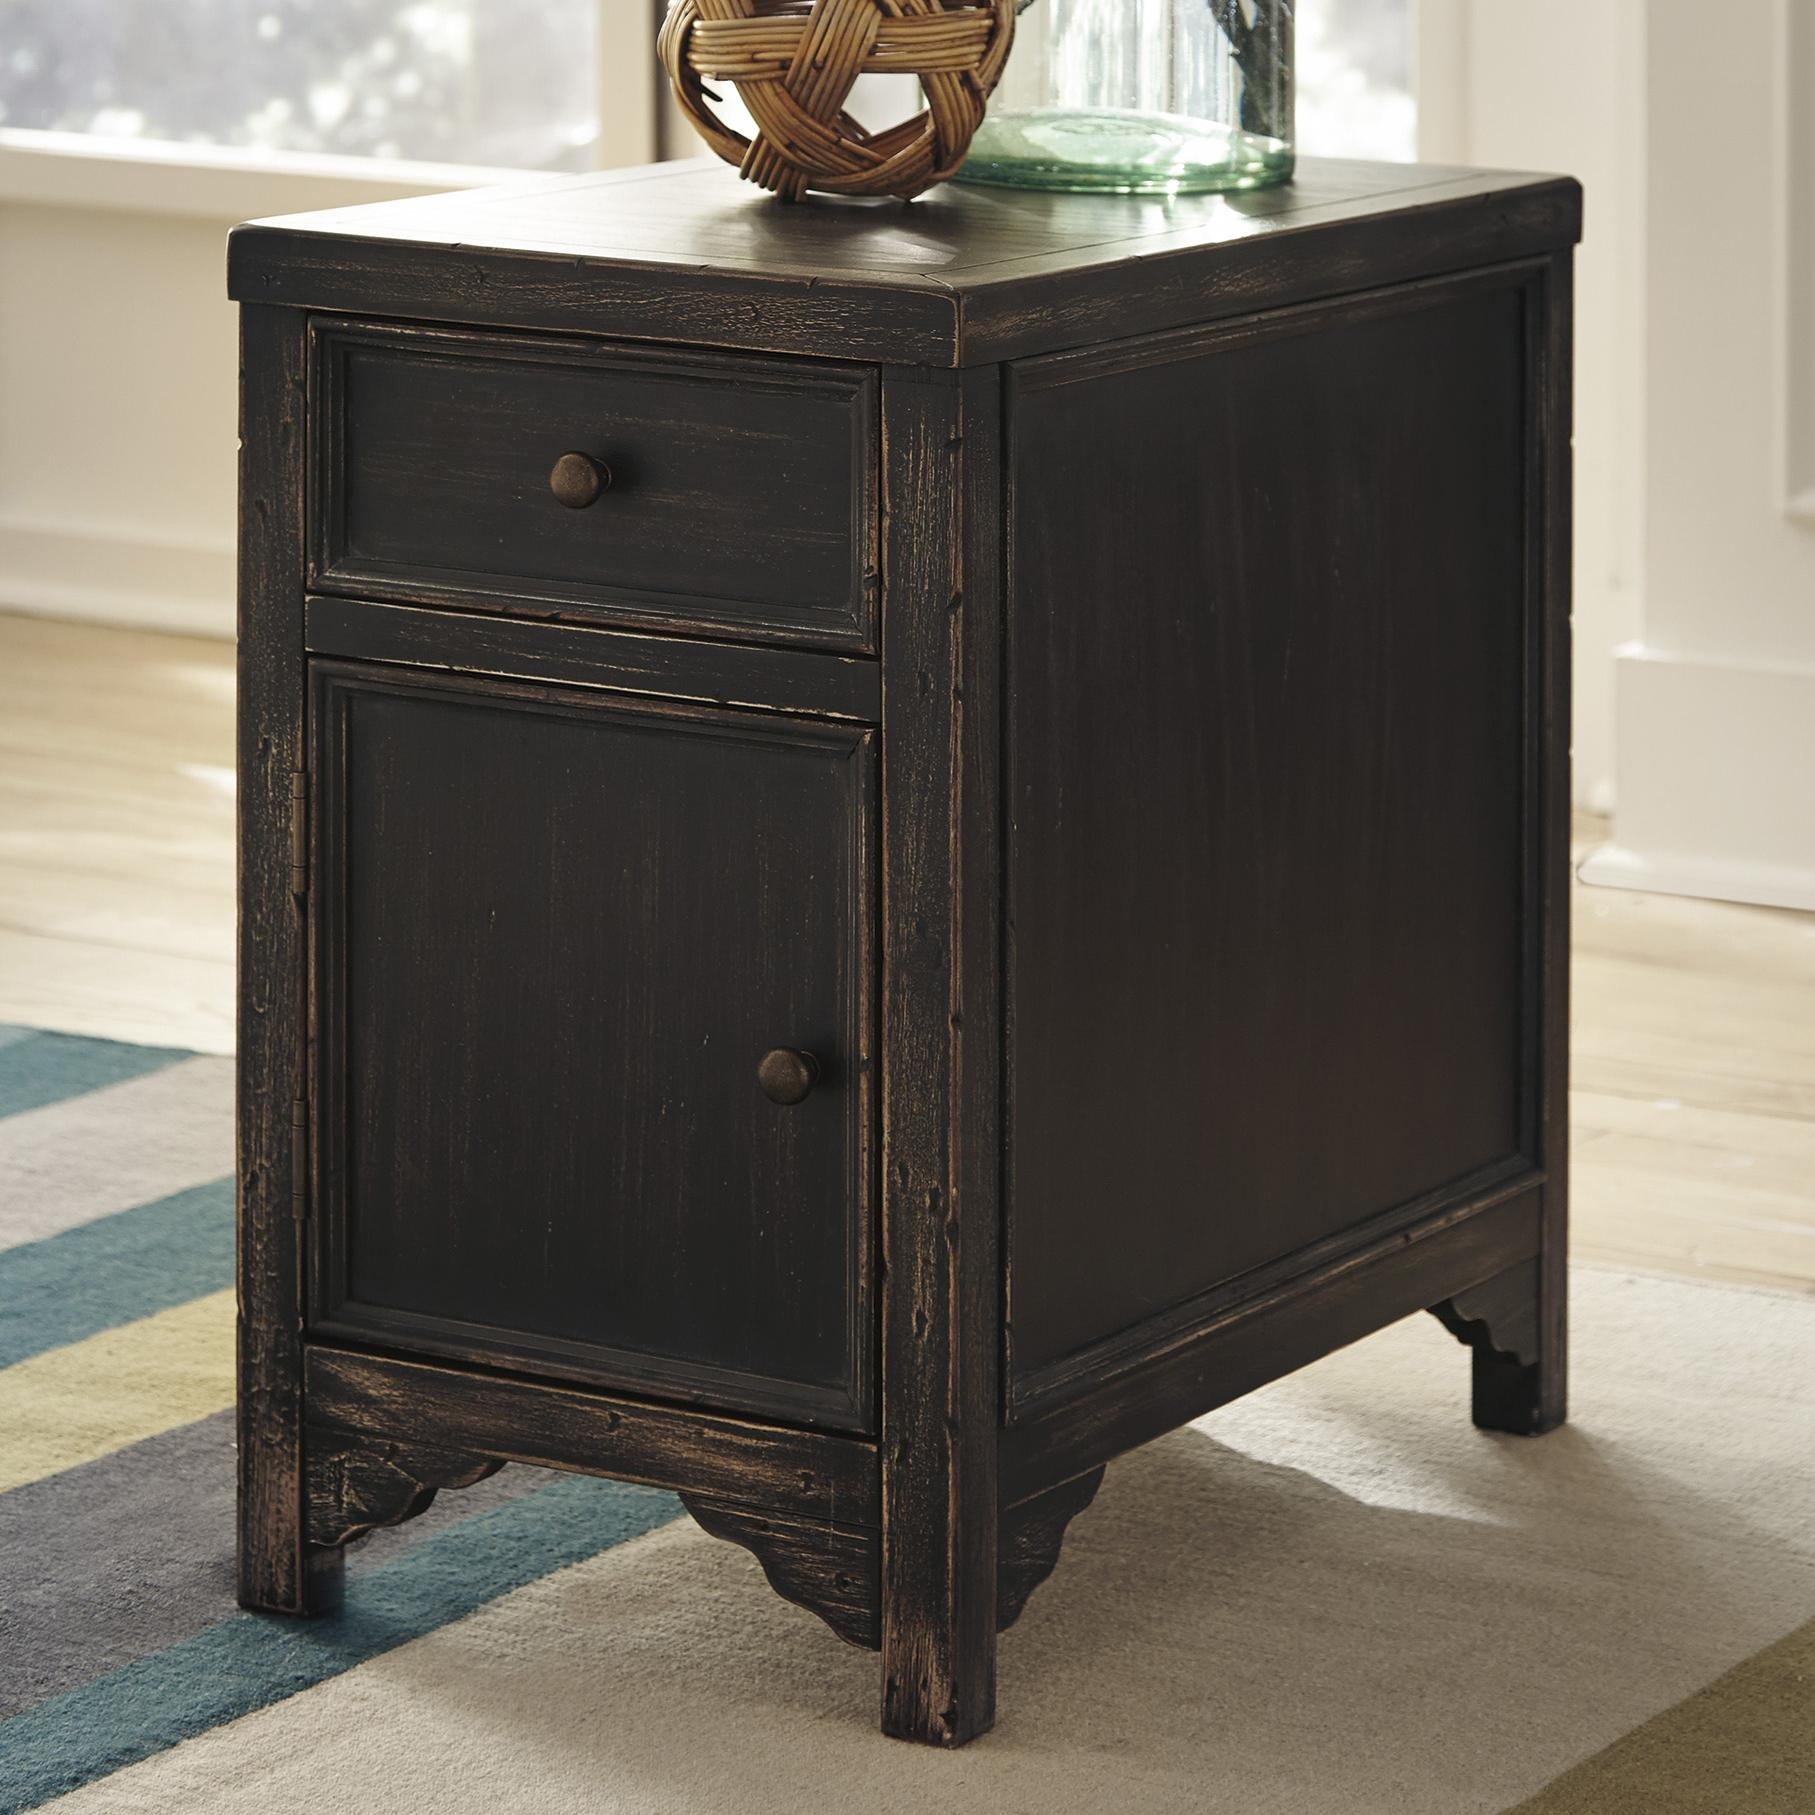 Signature Design by Ashley Gavelston Chair Side End Table - Item Number: T732-7